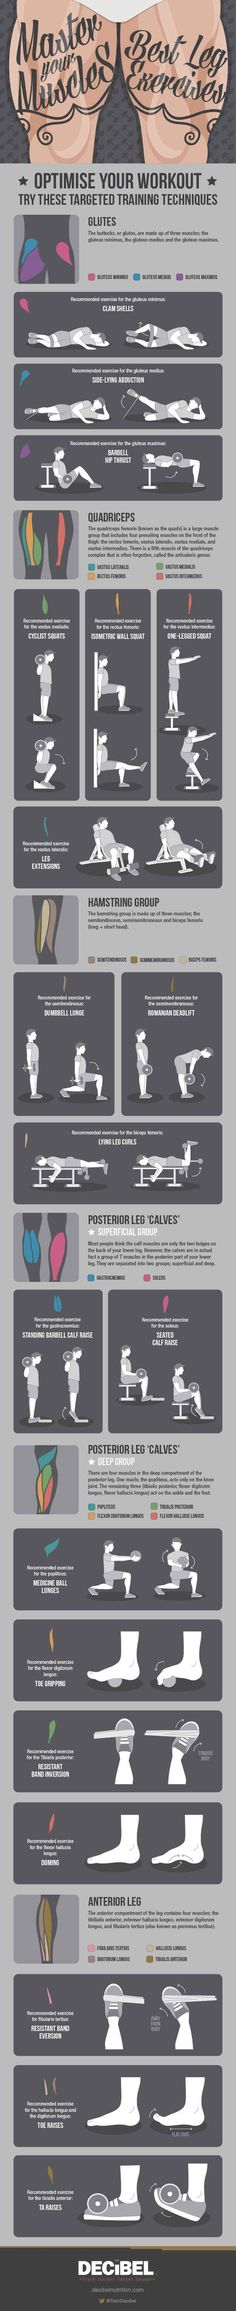 Learn how to work your butt and thighs with any piece of equipment in the gym.